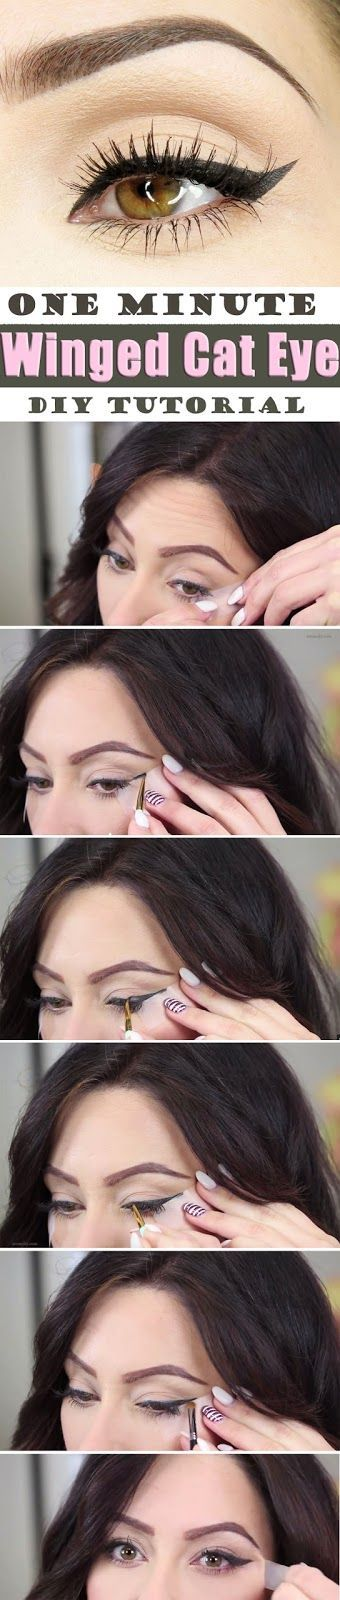 Brief Step by step Tutorial for Surprising One Minute Winged Cat Eye Makeup... Easy and Quick... shop in store, or online at www.youravon.com/mking7641 (scheduled via http://www.tailwindapp.com?utm_s